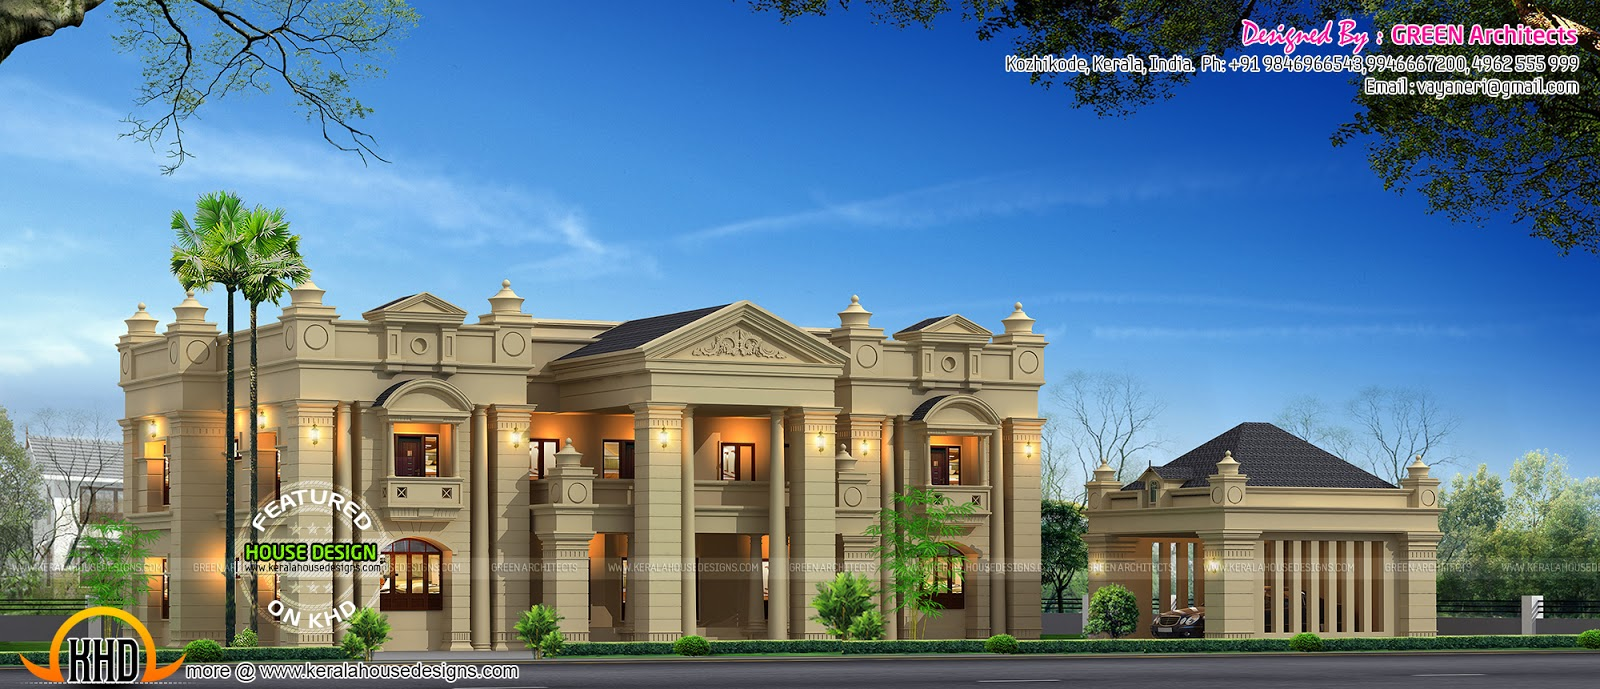 Colonial model luxurious house in kerala kerala home for Colonial style home design in kerala